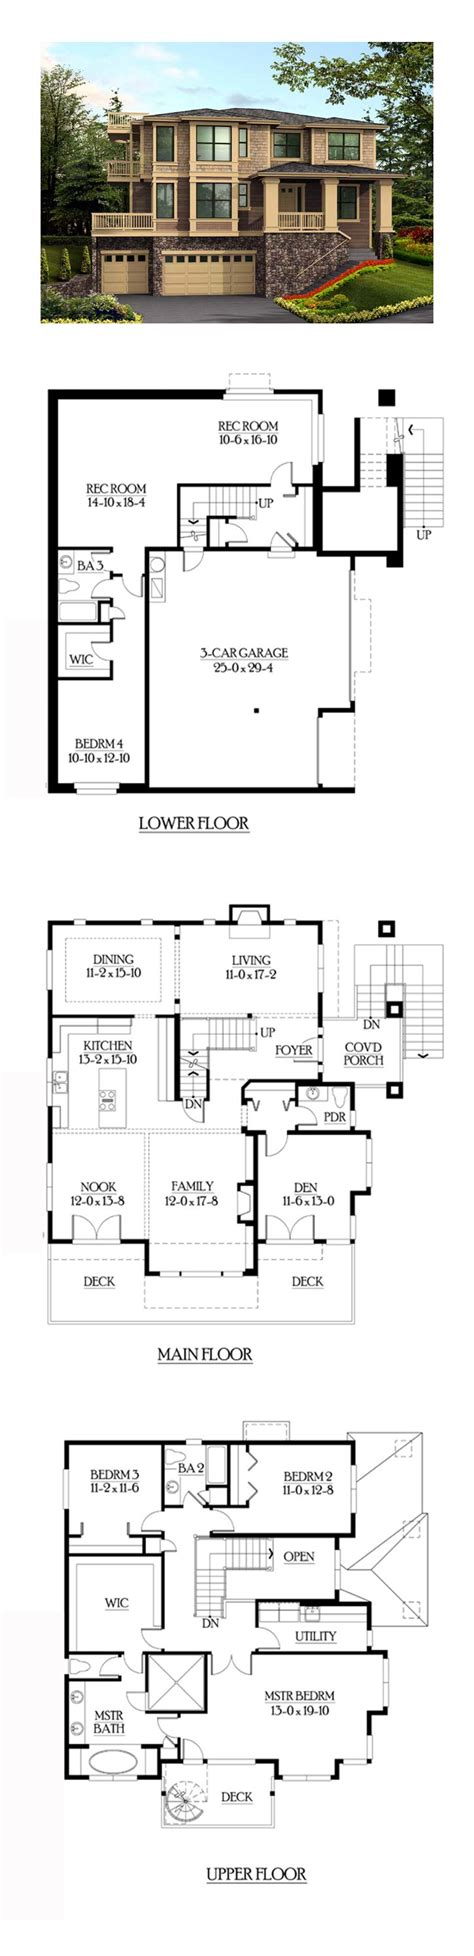 house plans with finished basement finished basement cool house plan id chp 39324 total